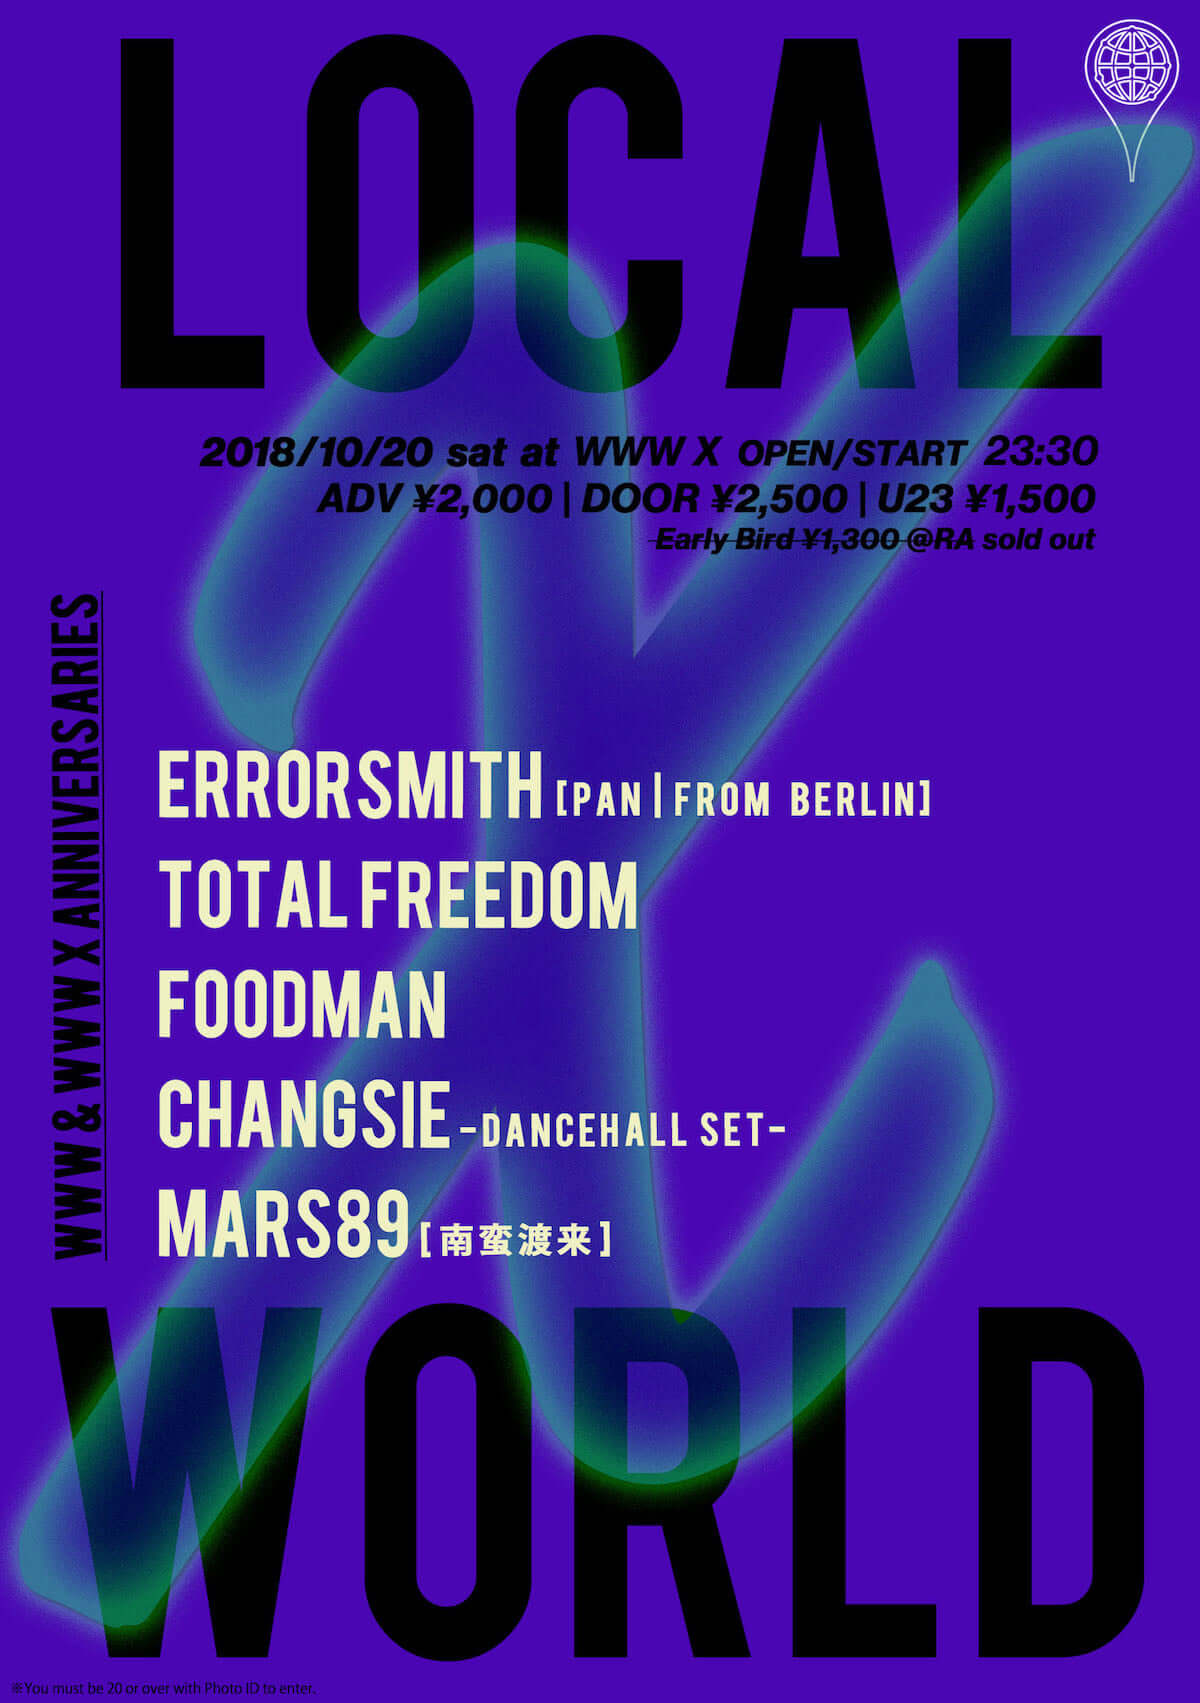 ERRORSMITHが登場する「Local World」第10回にTotal FreedomやFoodman、CHANGSIE、Mars89が登場 music180927-localworld-errorsimith-1-1200x1703